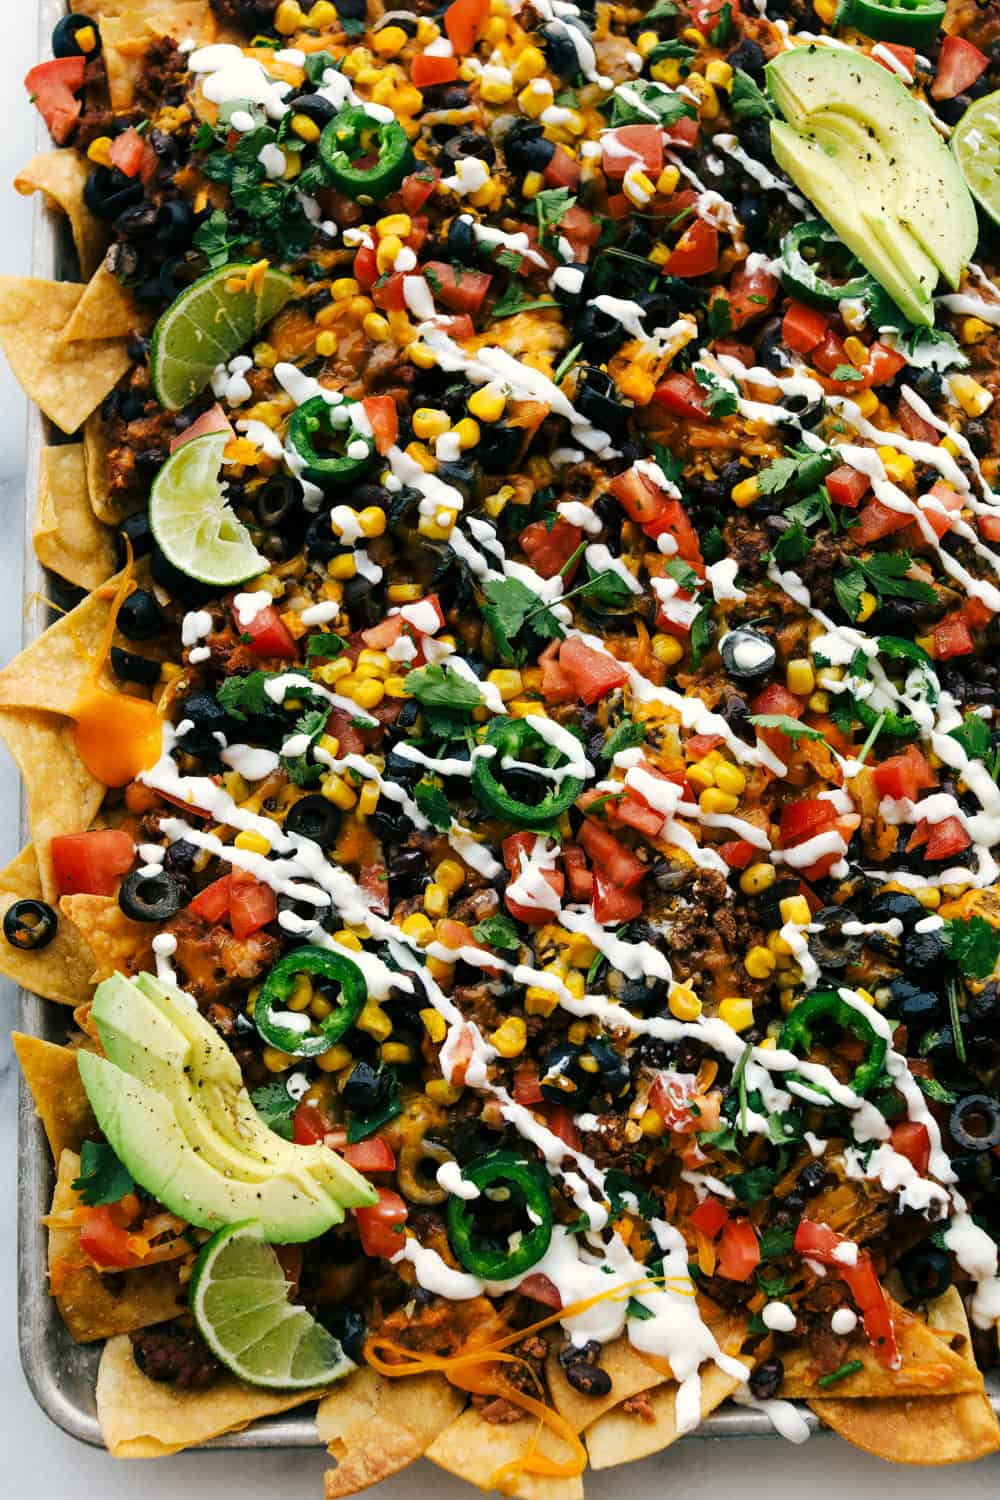 Oven baked sheet pan nachos with sour cream and avocado over top.